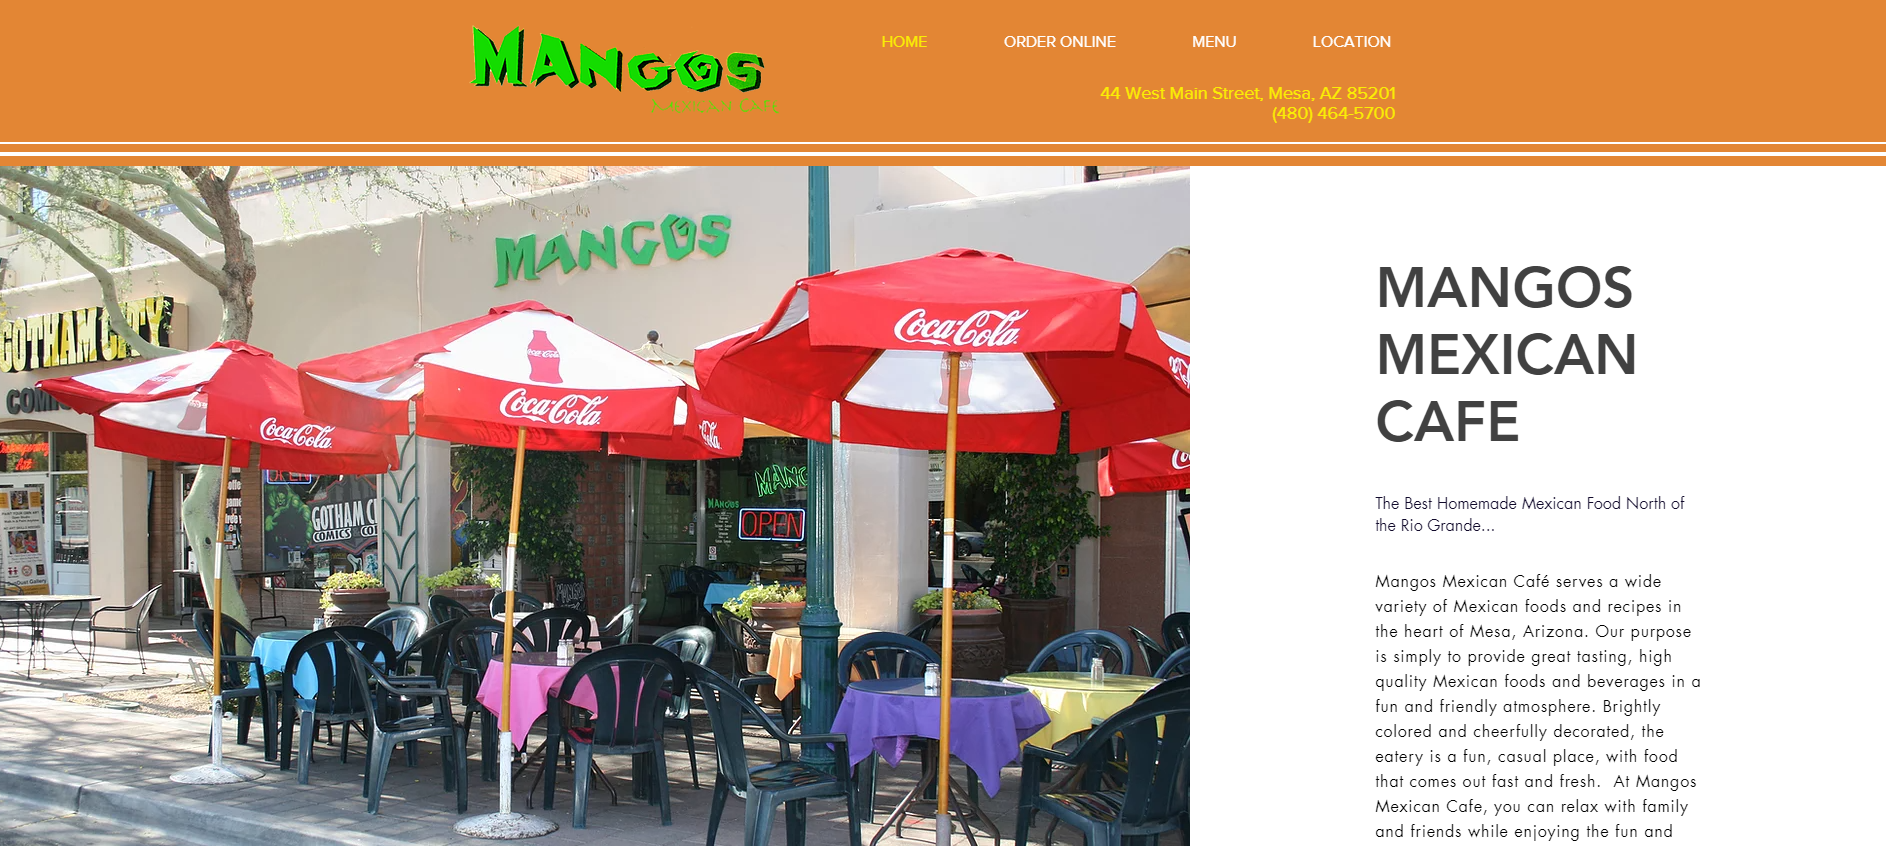 Mangos Mexican Cafe